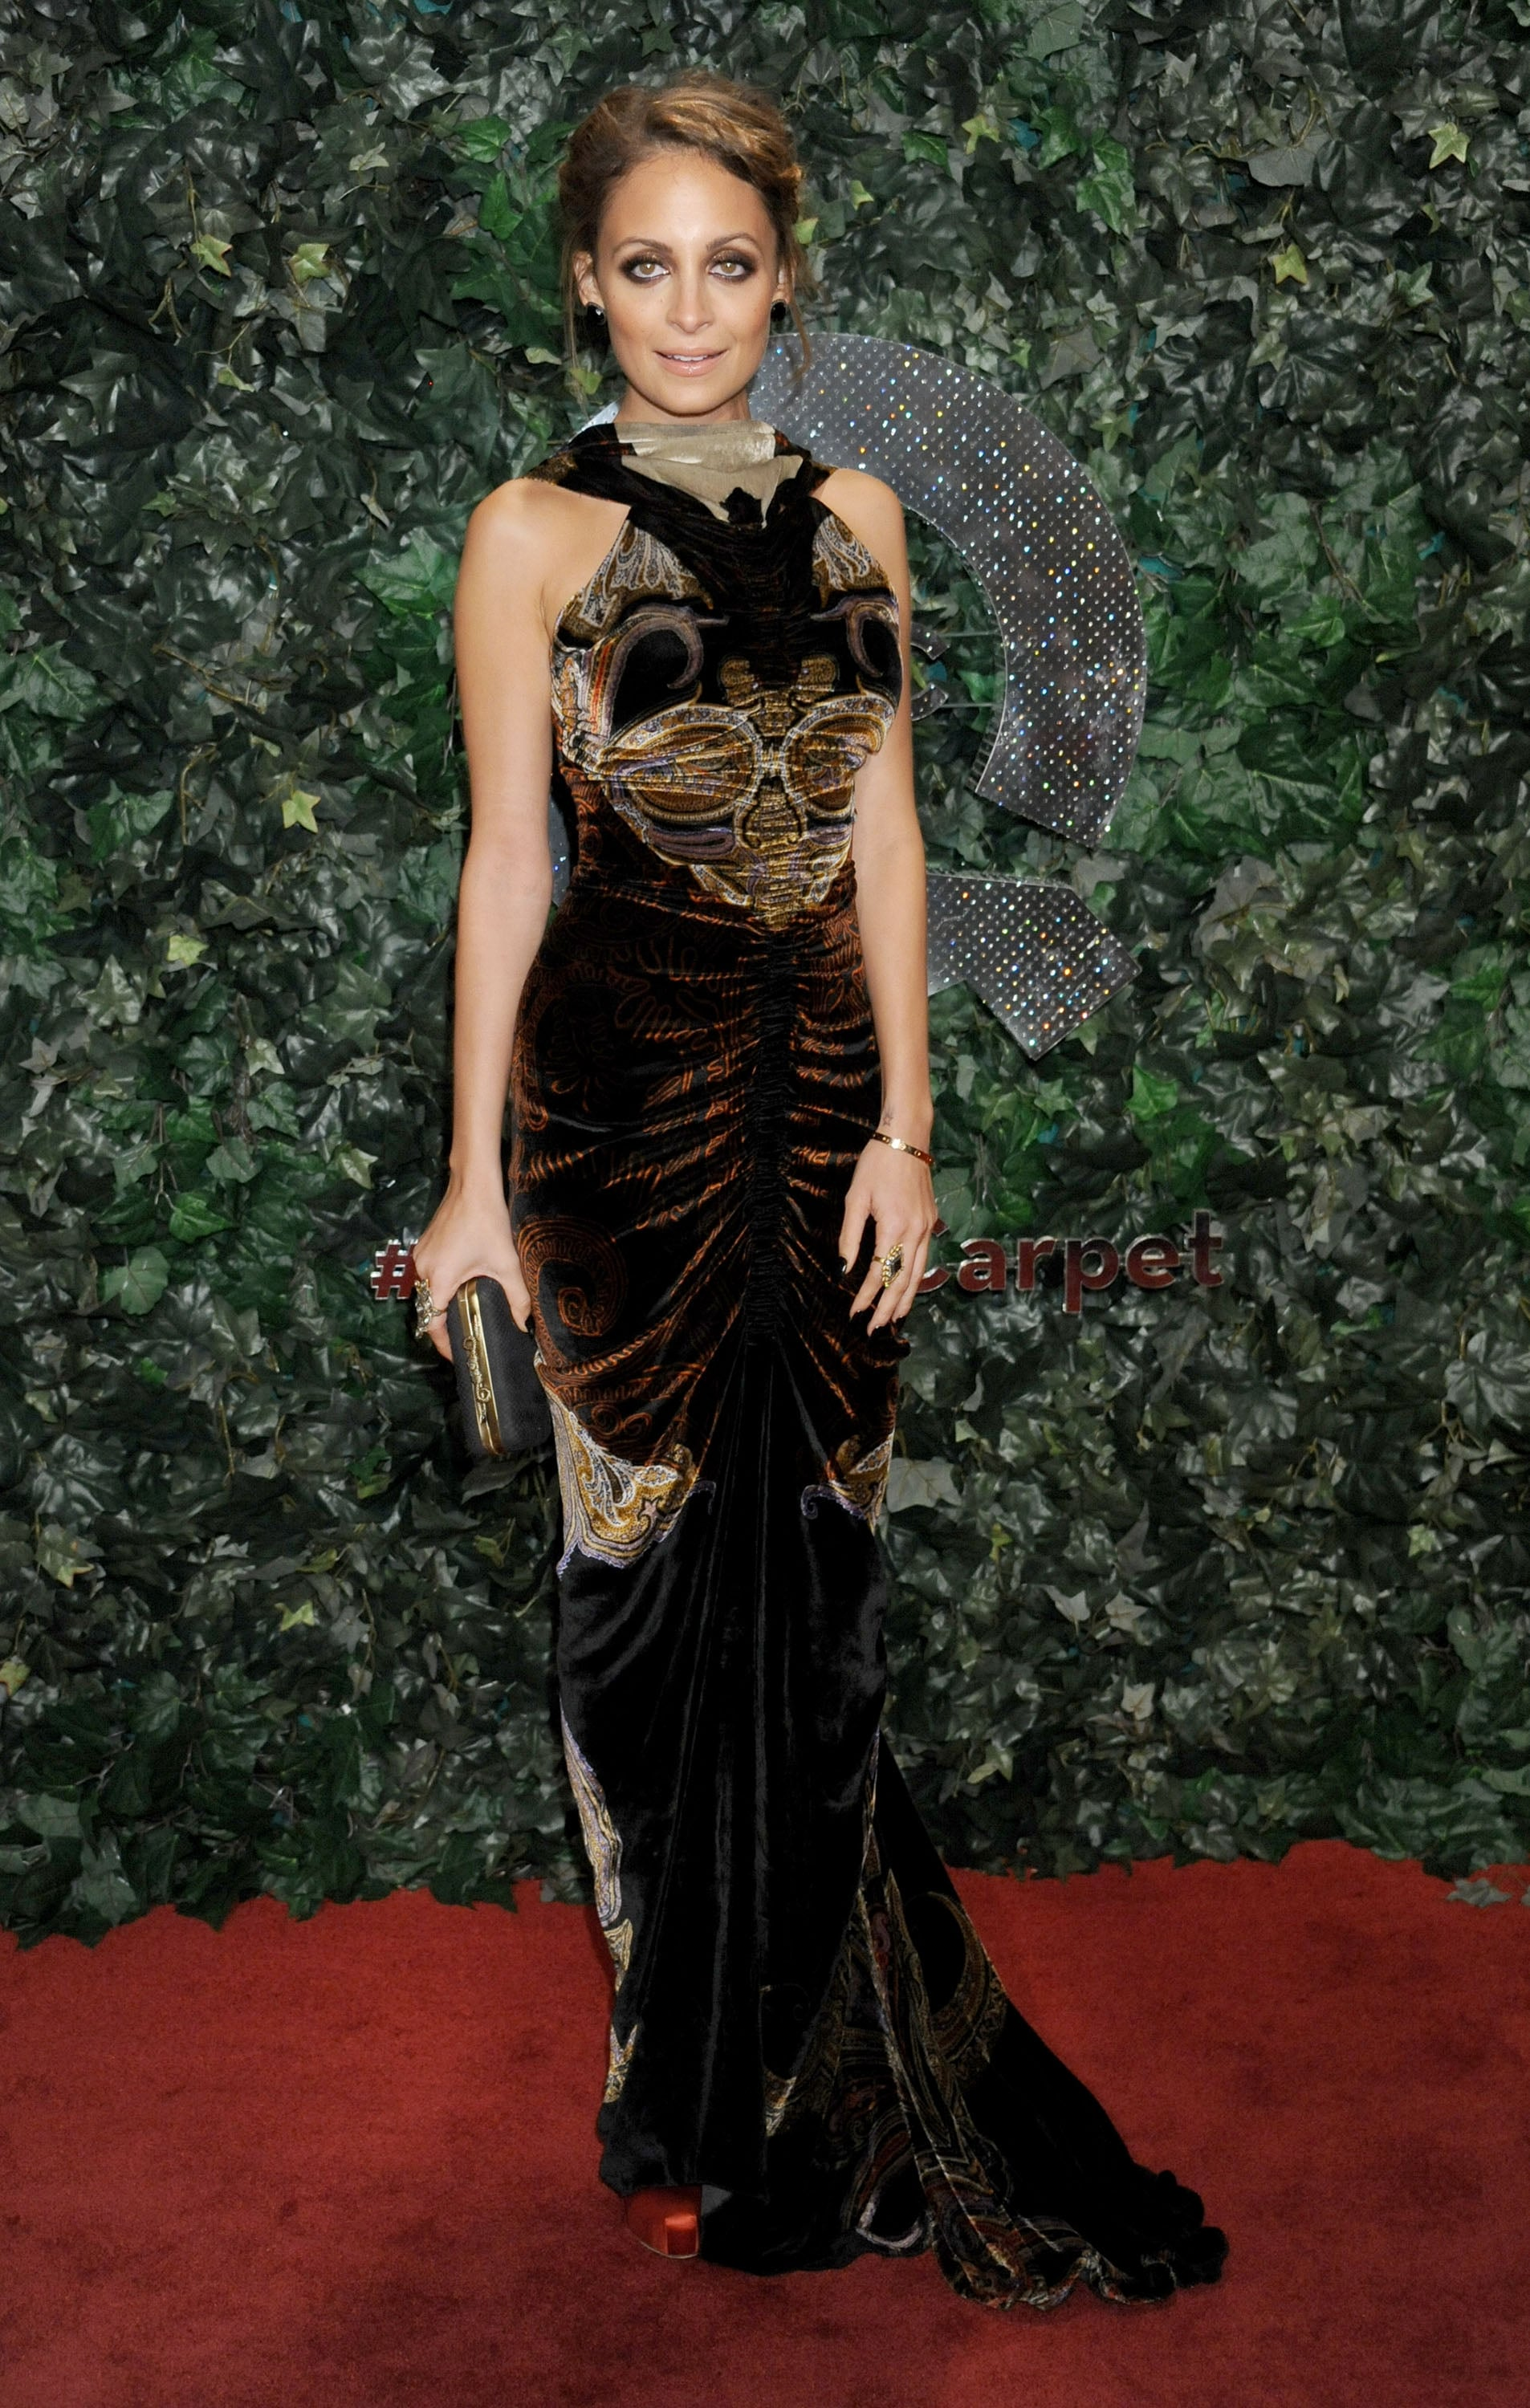 After launching a clothing line for QVC, Nicole hit the red carpet for the company's big LA bash in February 2013.